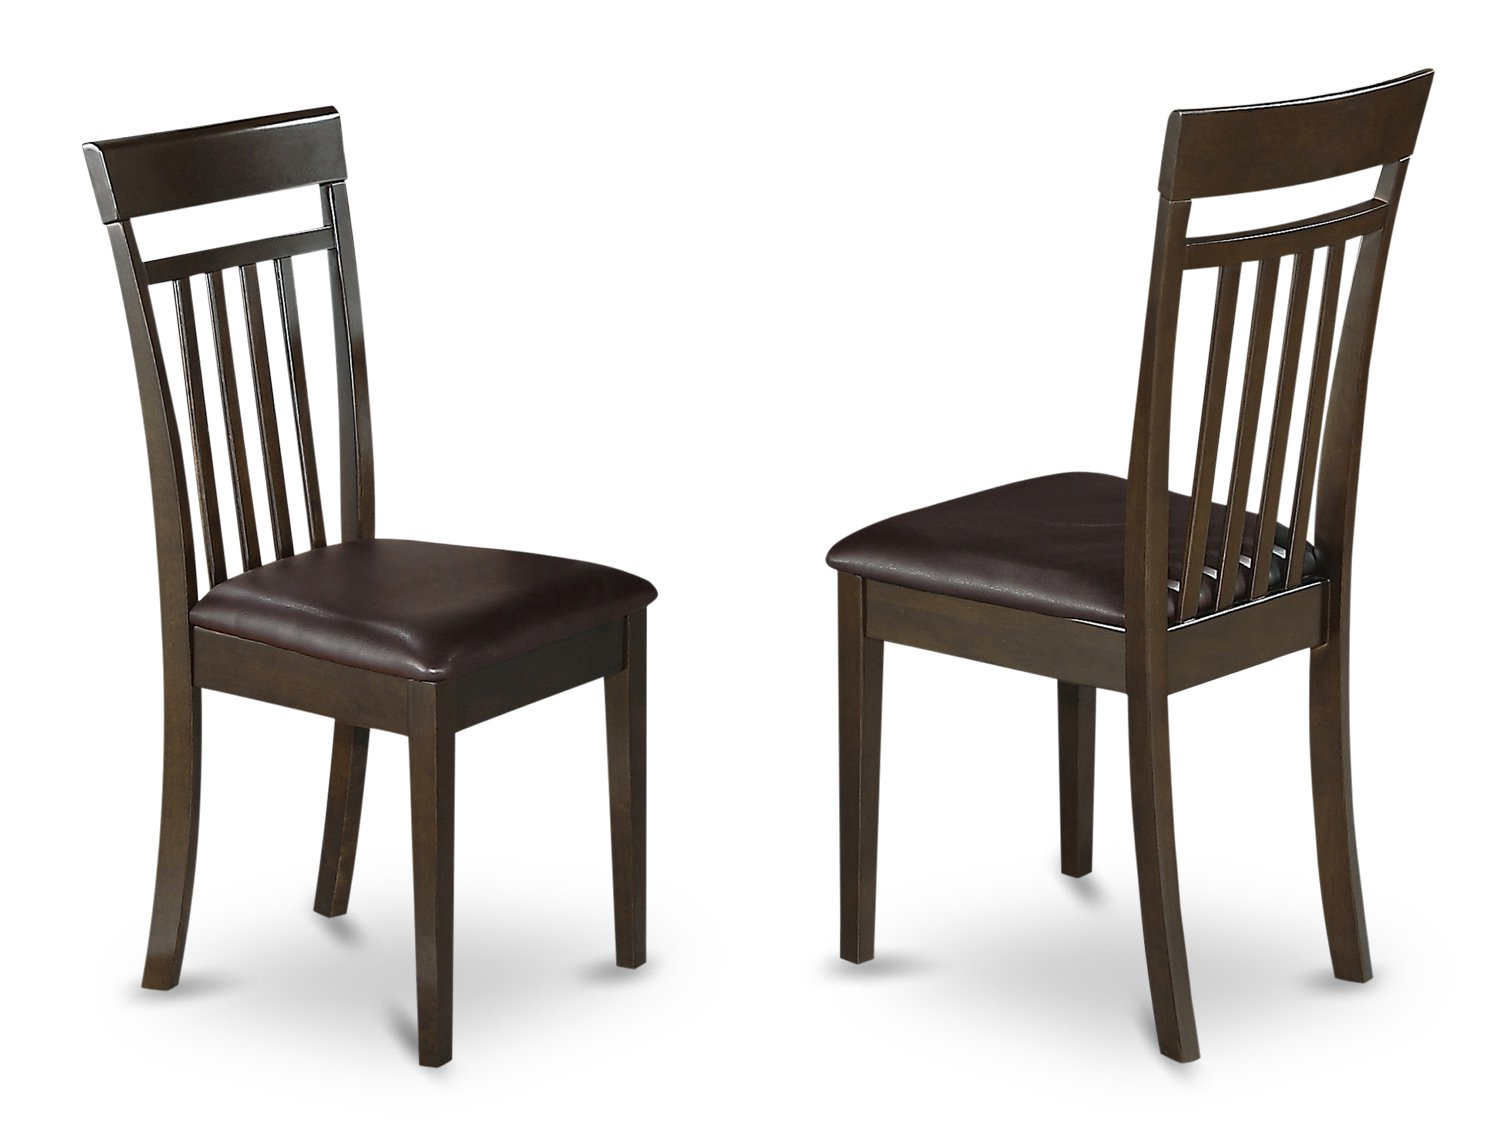 Set of 2 Capri  dining room chairs with faux leather  in Cappuccino finish.